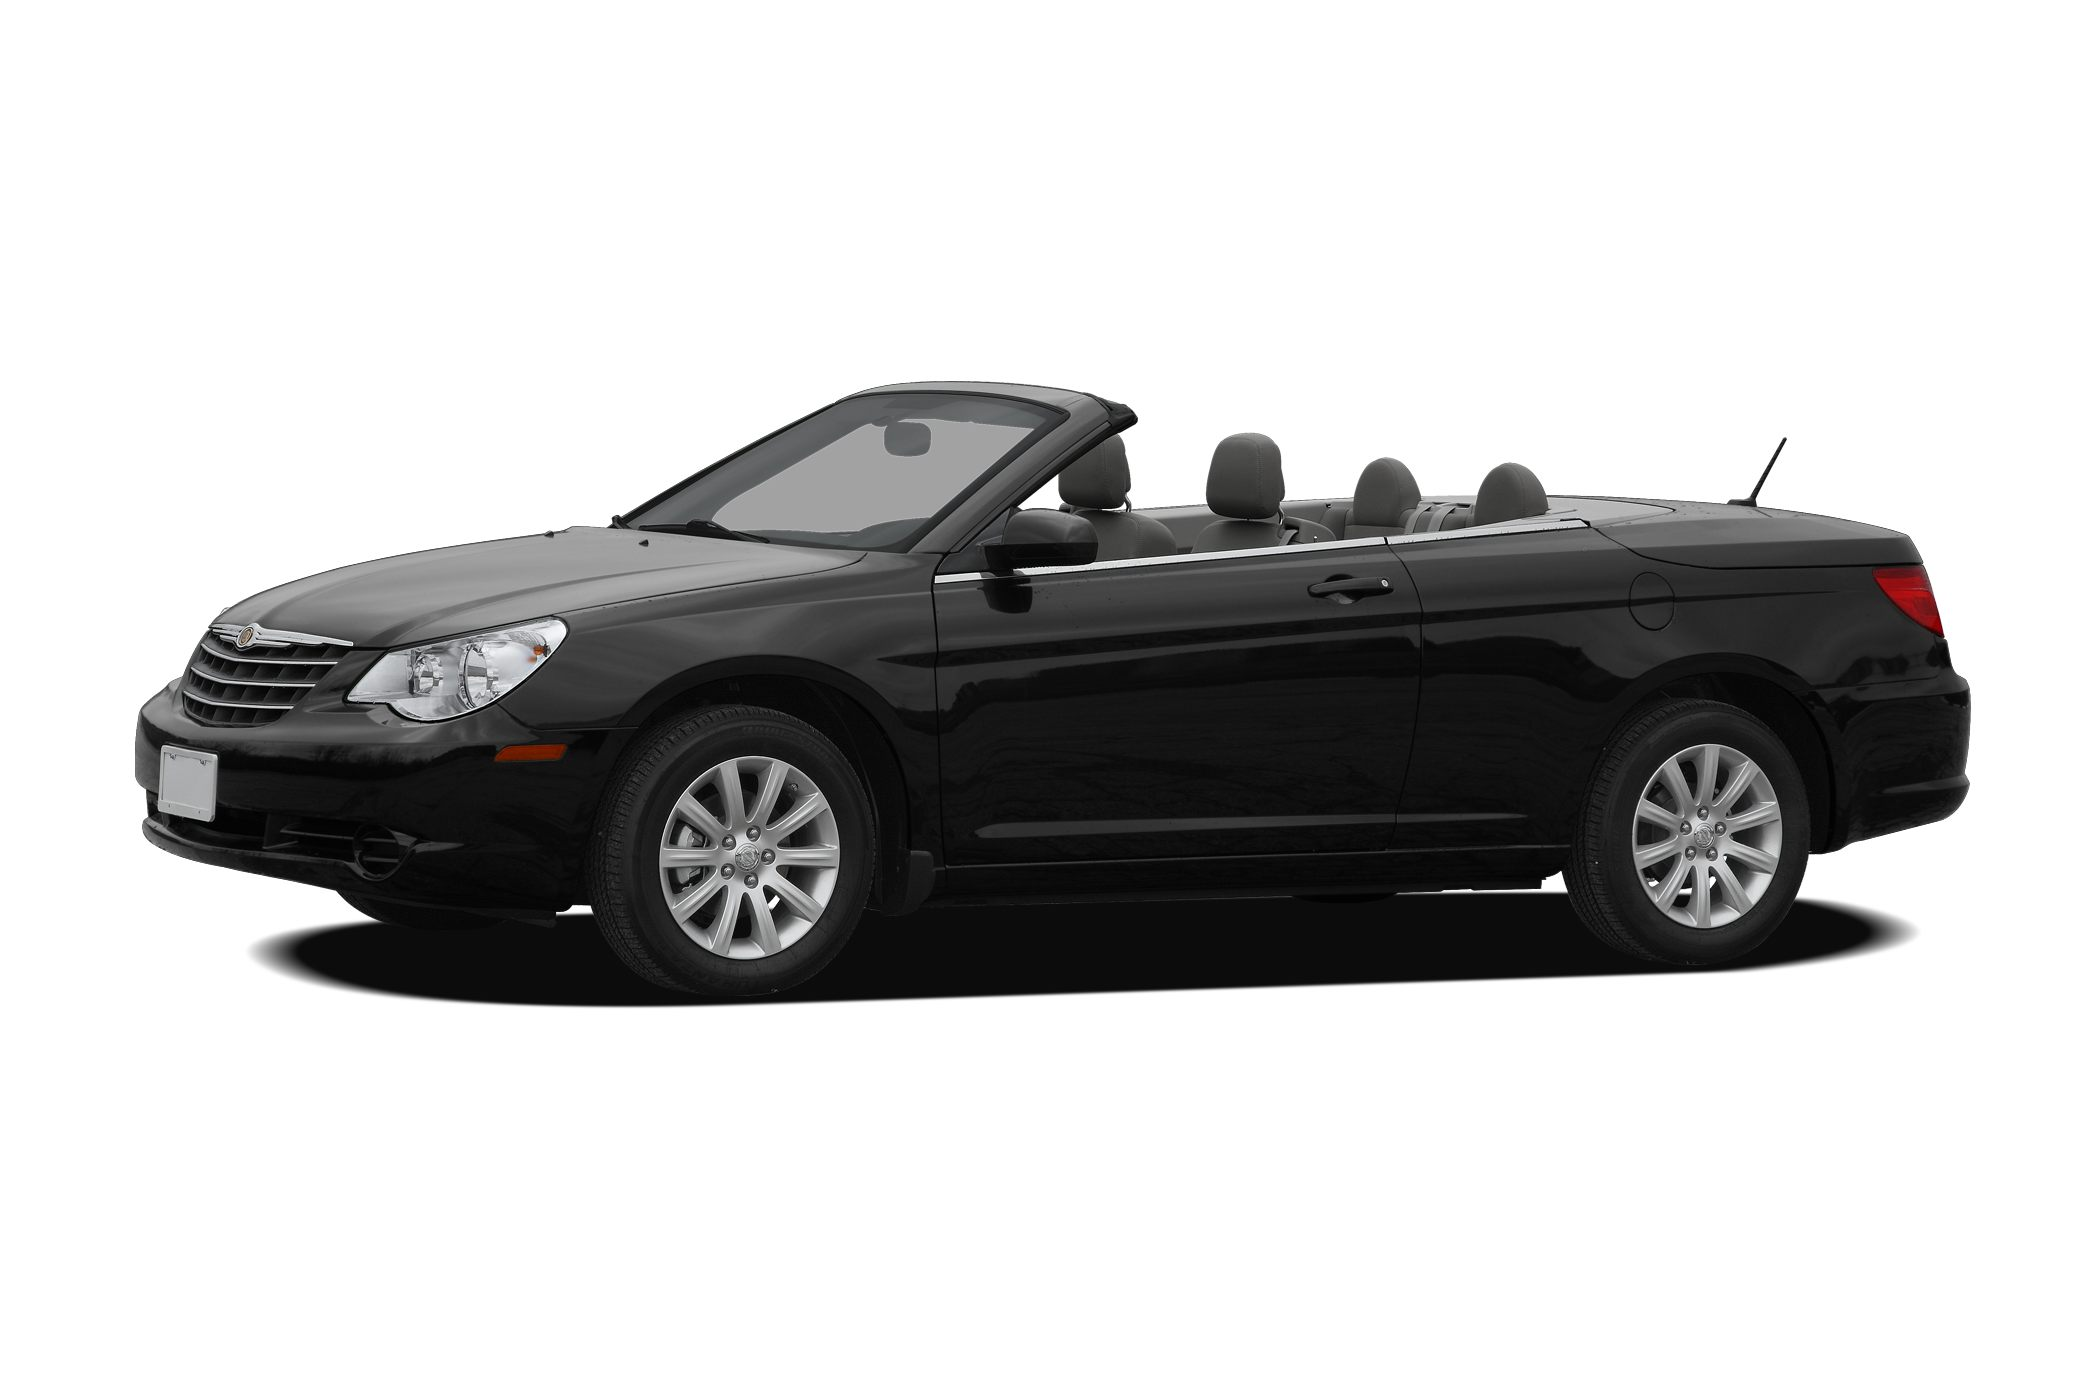 Chrysler Sebring #12